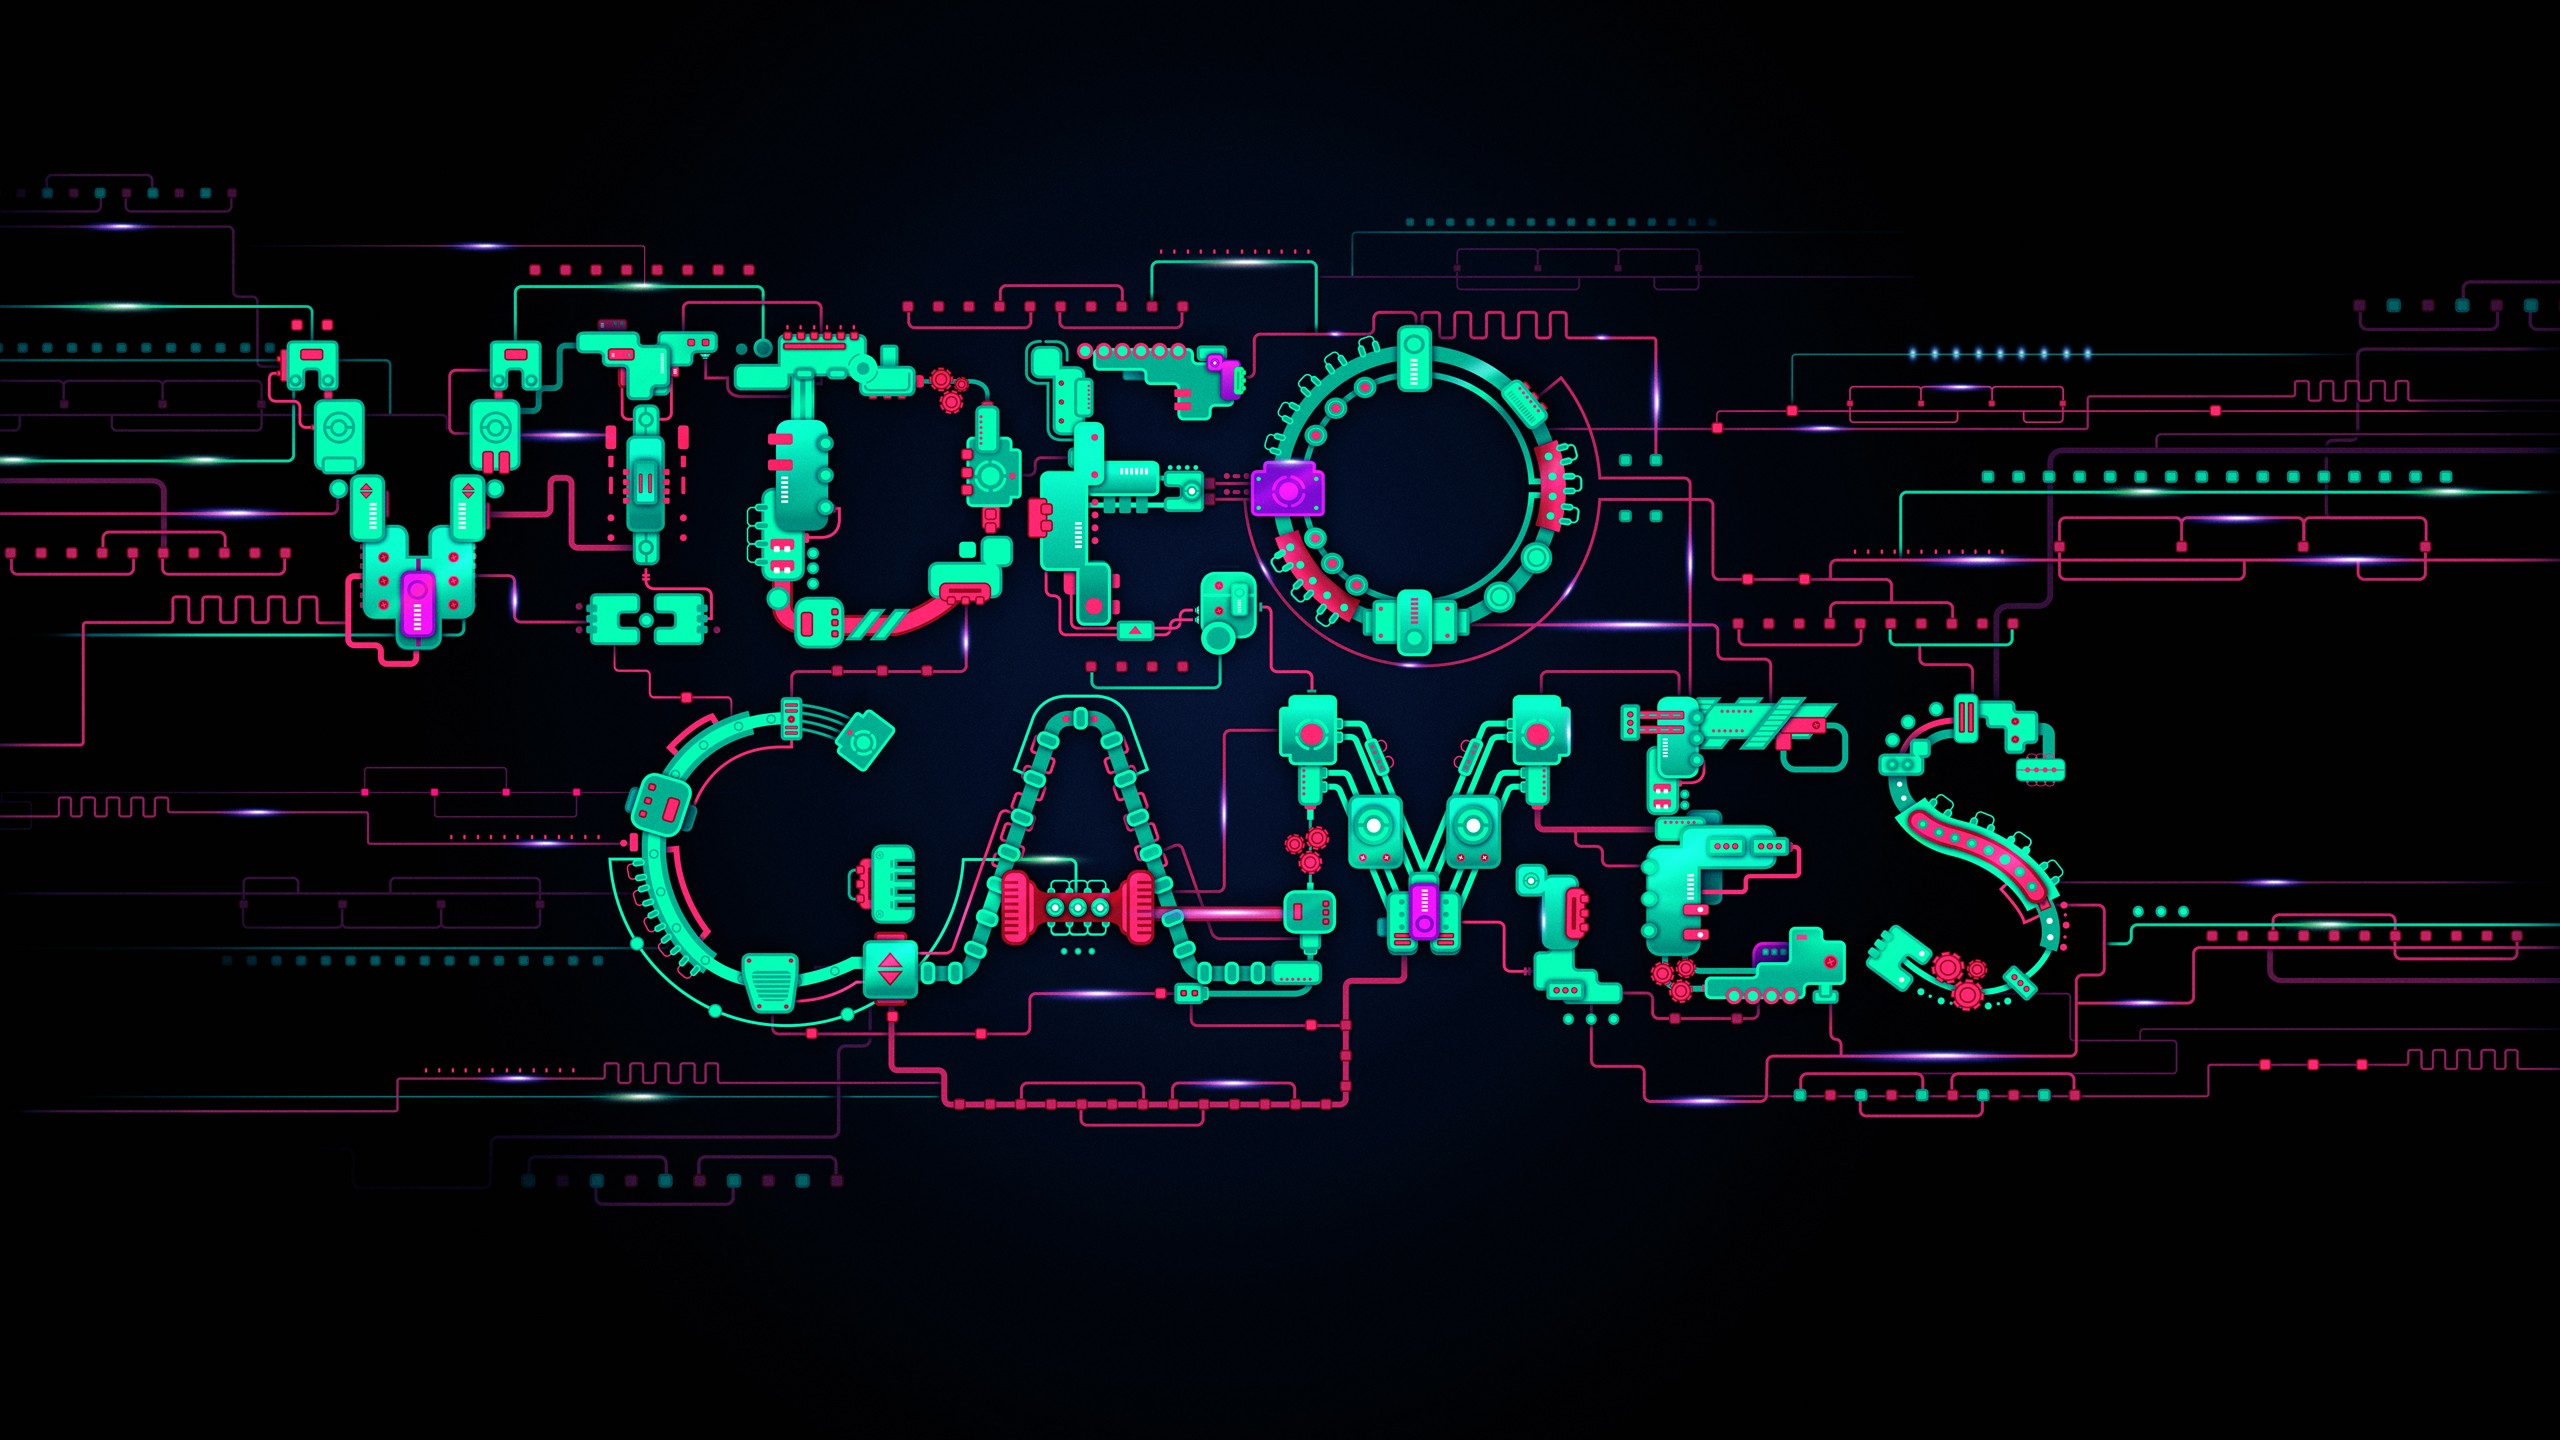 Gaming Wallpaper  2560x1440 38549